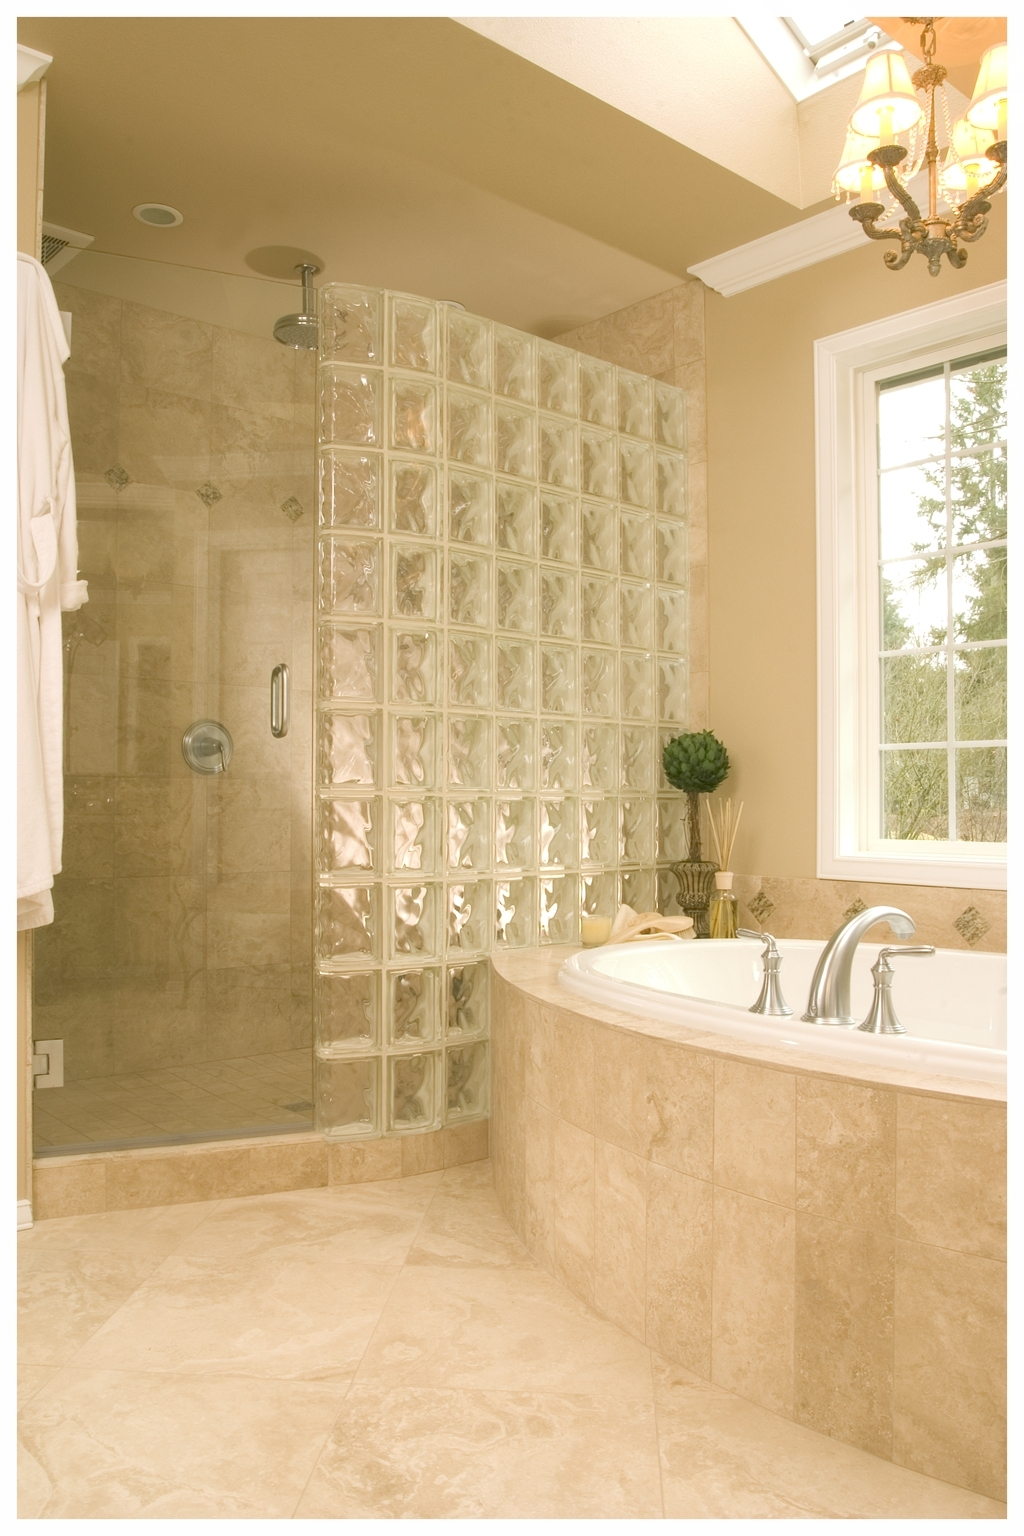 Woodinville Traditional Master Bath 1.jpg